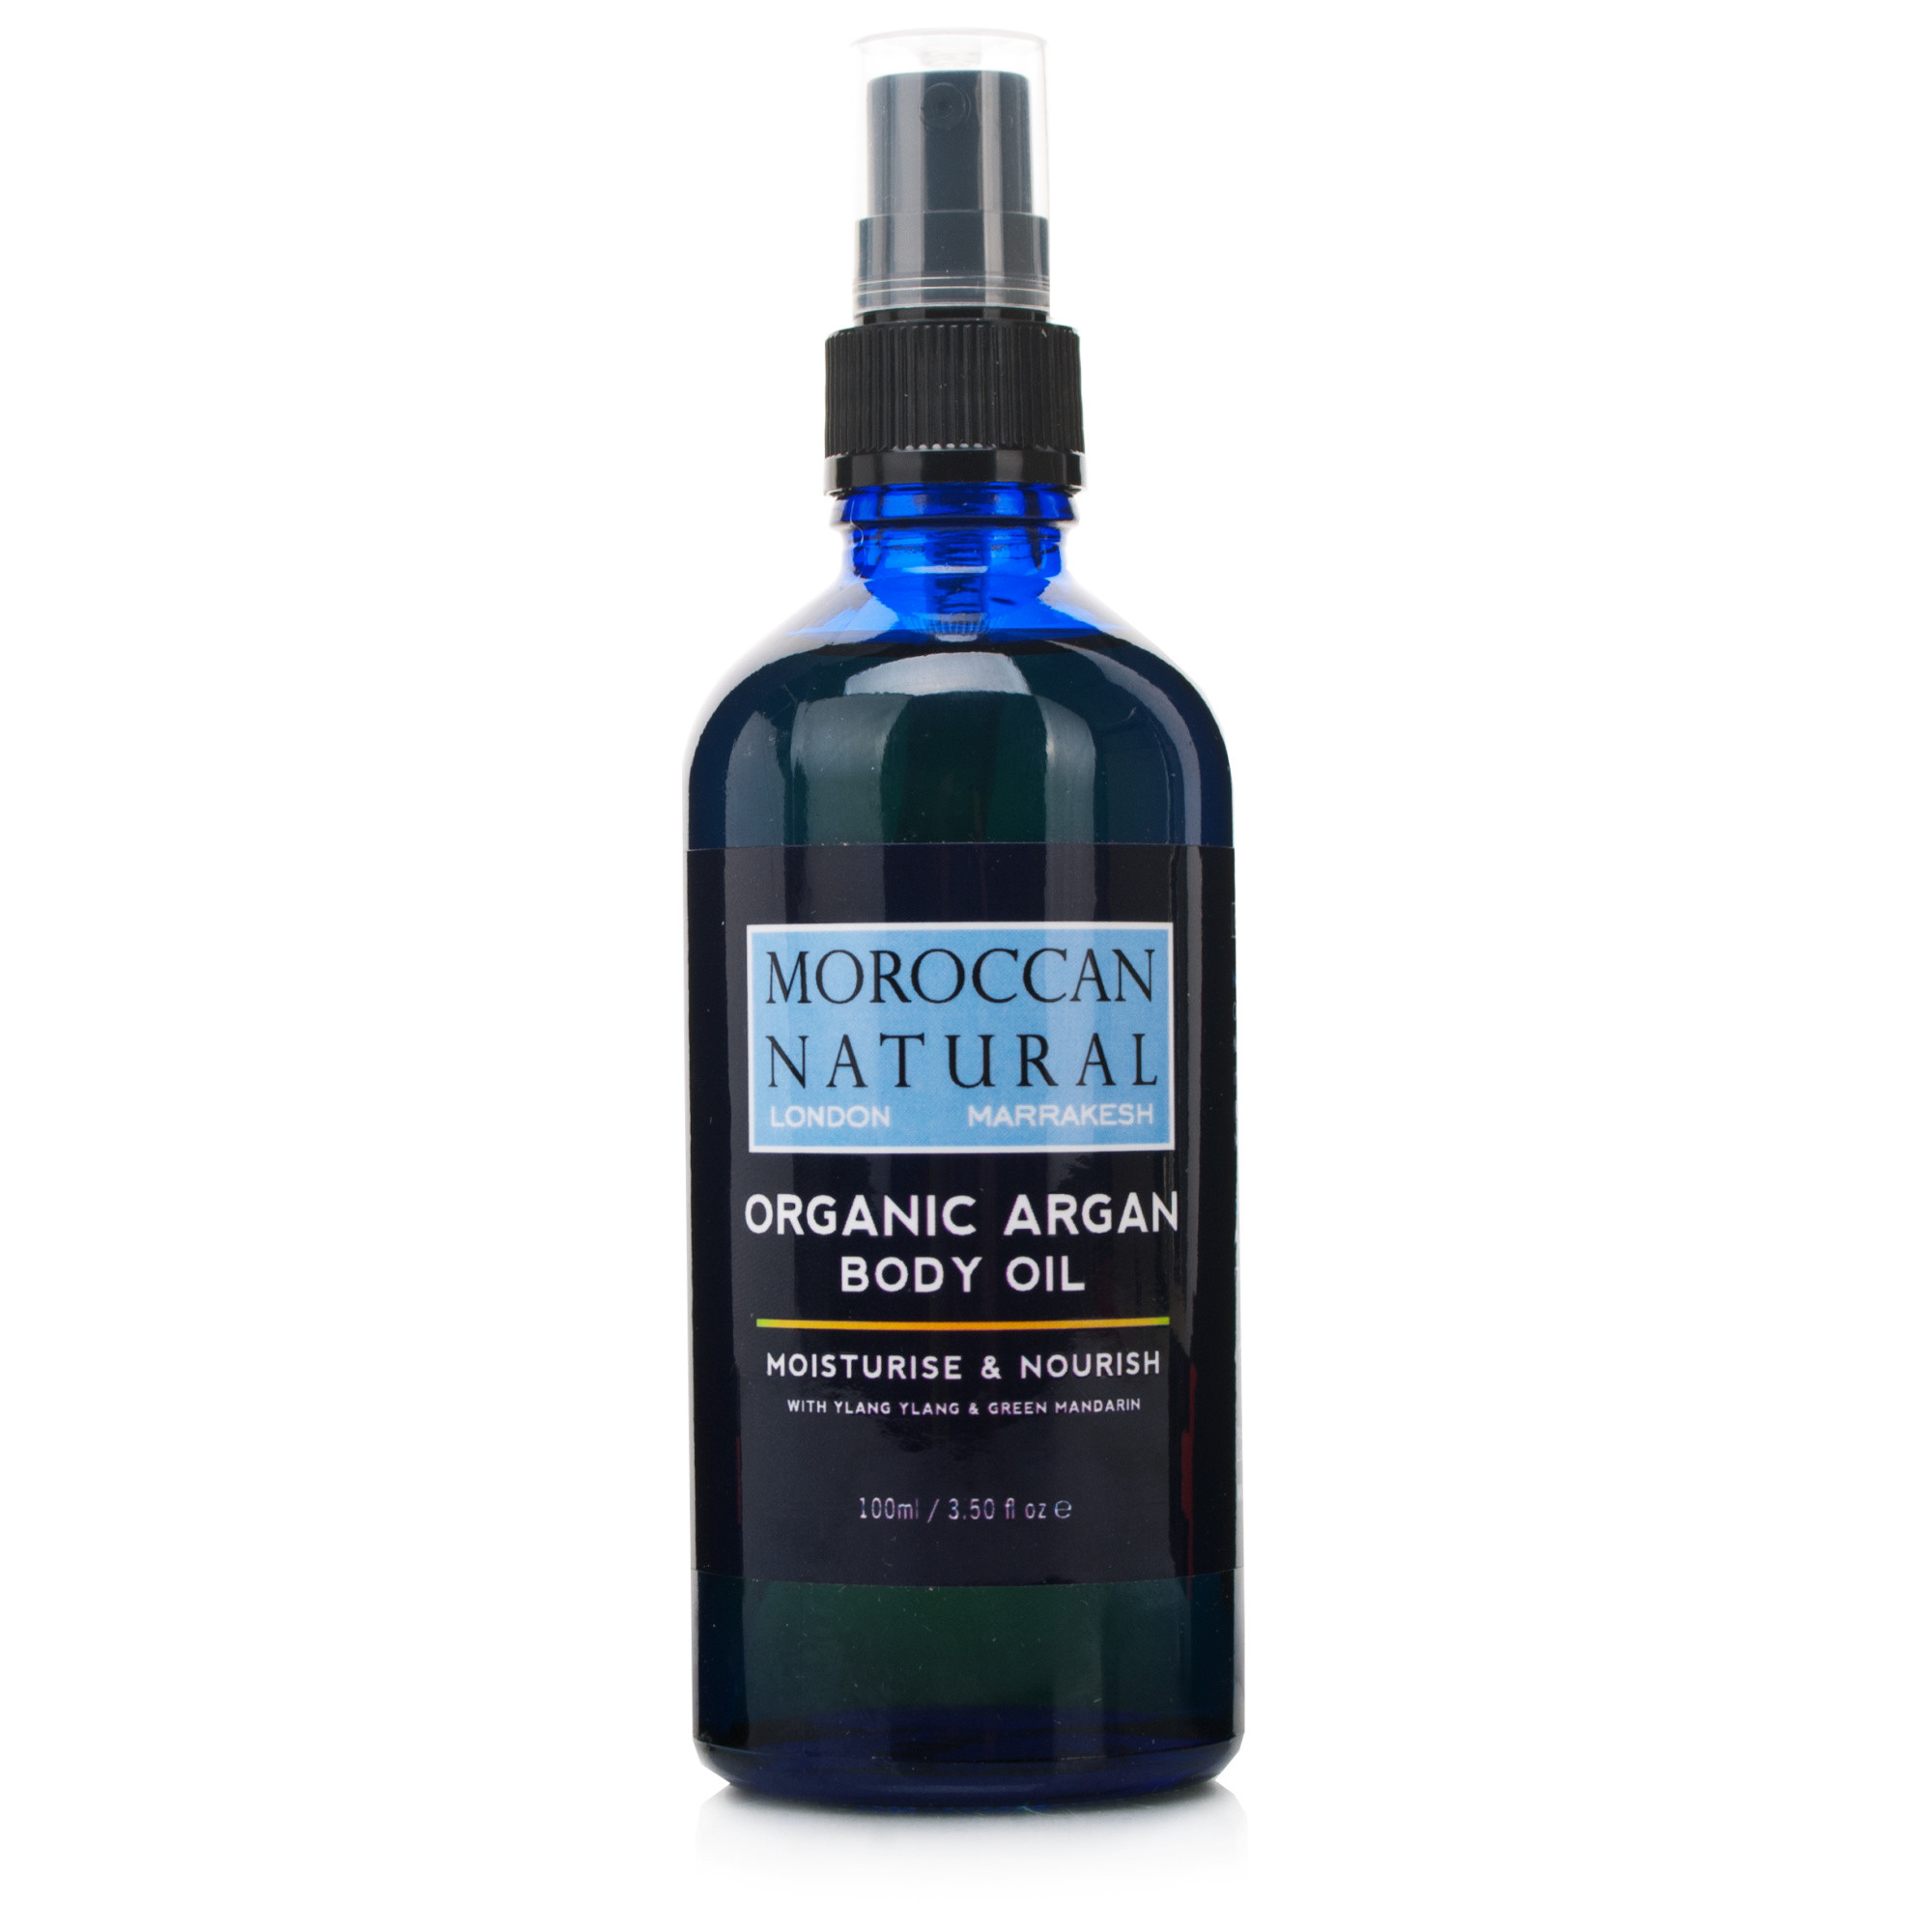 Moroccan Natural Organic Argan Body Oil